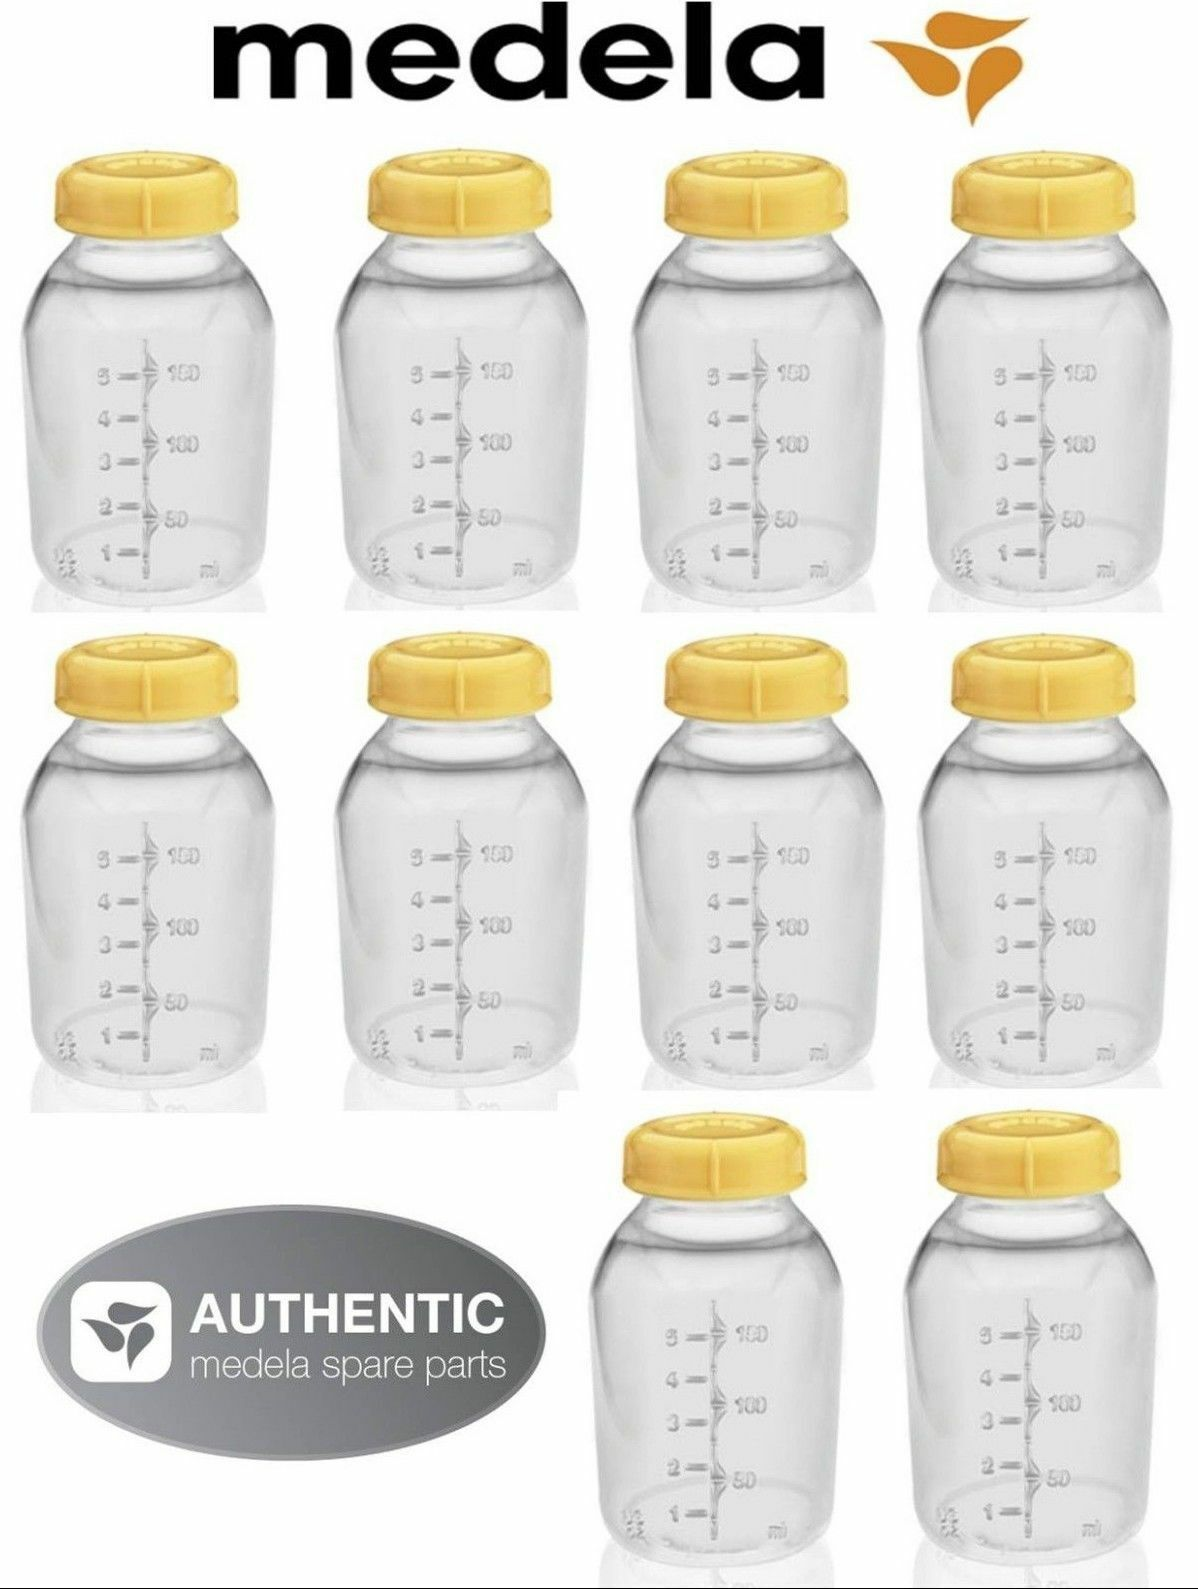 NEW! 10 MEDELA BREASTMILK COLLECTION STORAGE FEEDING BOTTLE